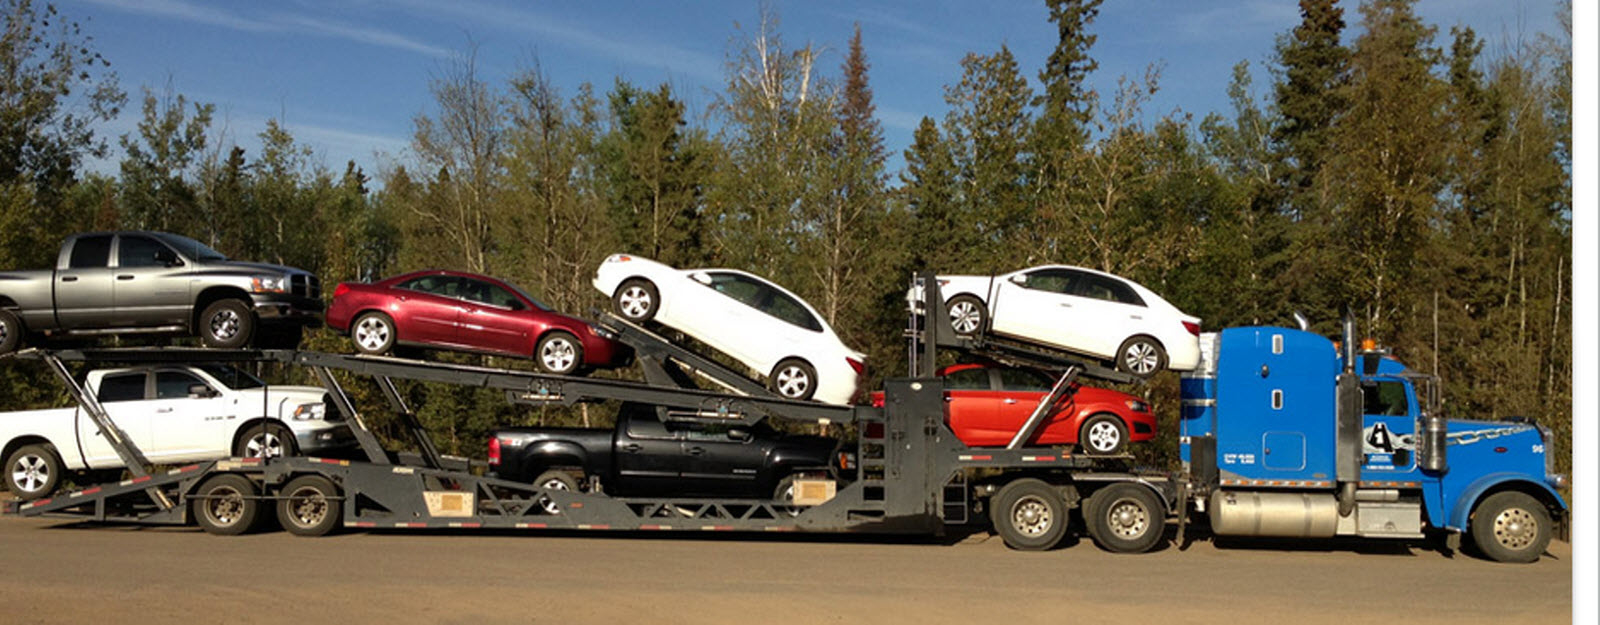 A-1 Equipment Hauling & Towing in Fort McMurray: Car Hauler towing